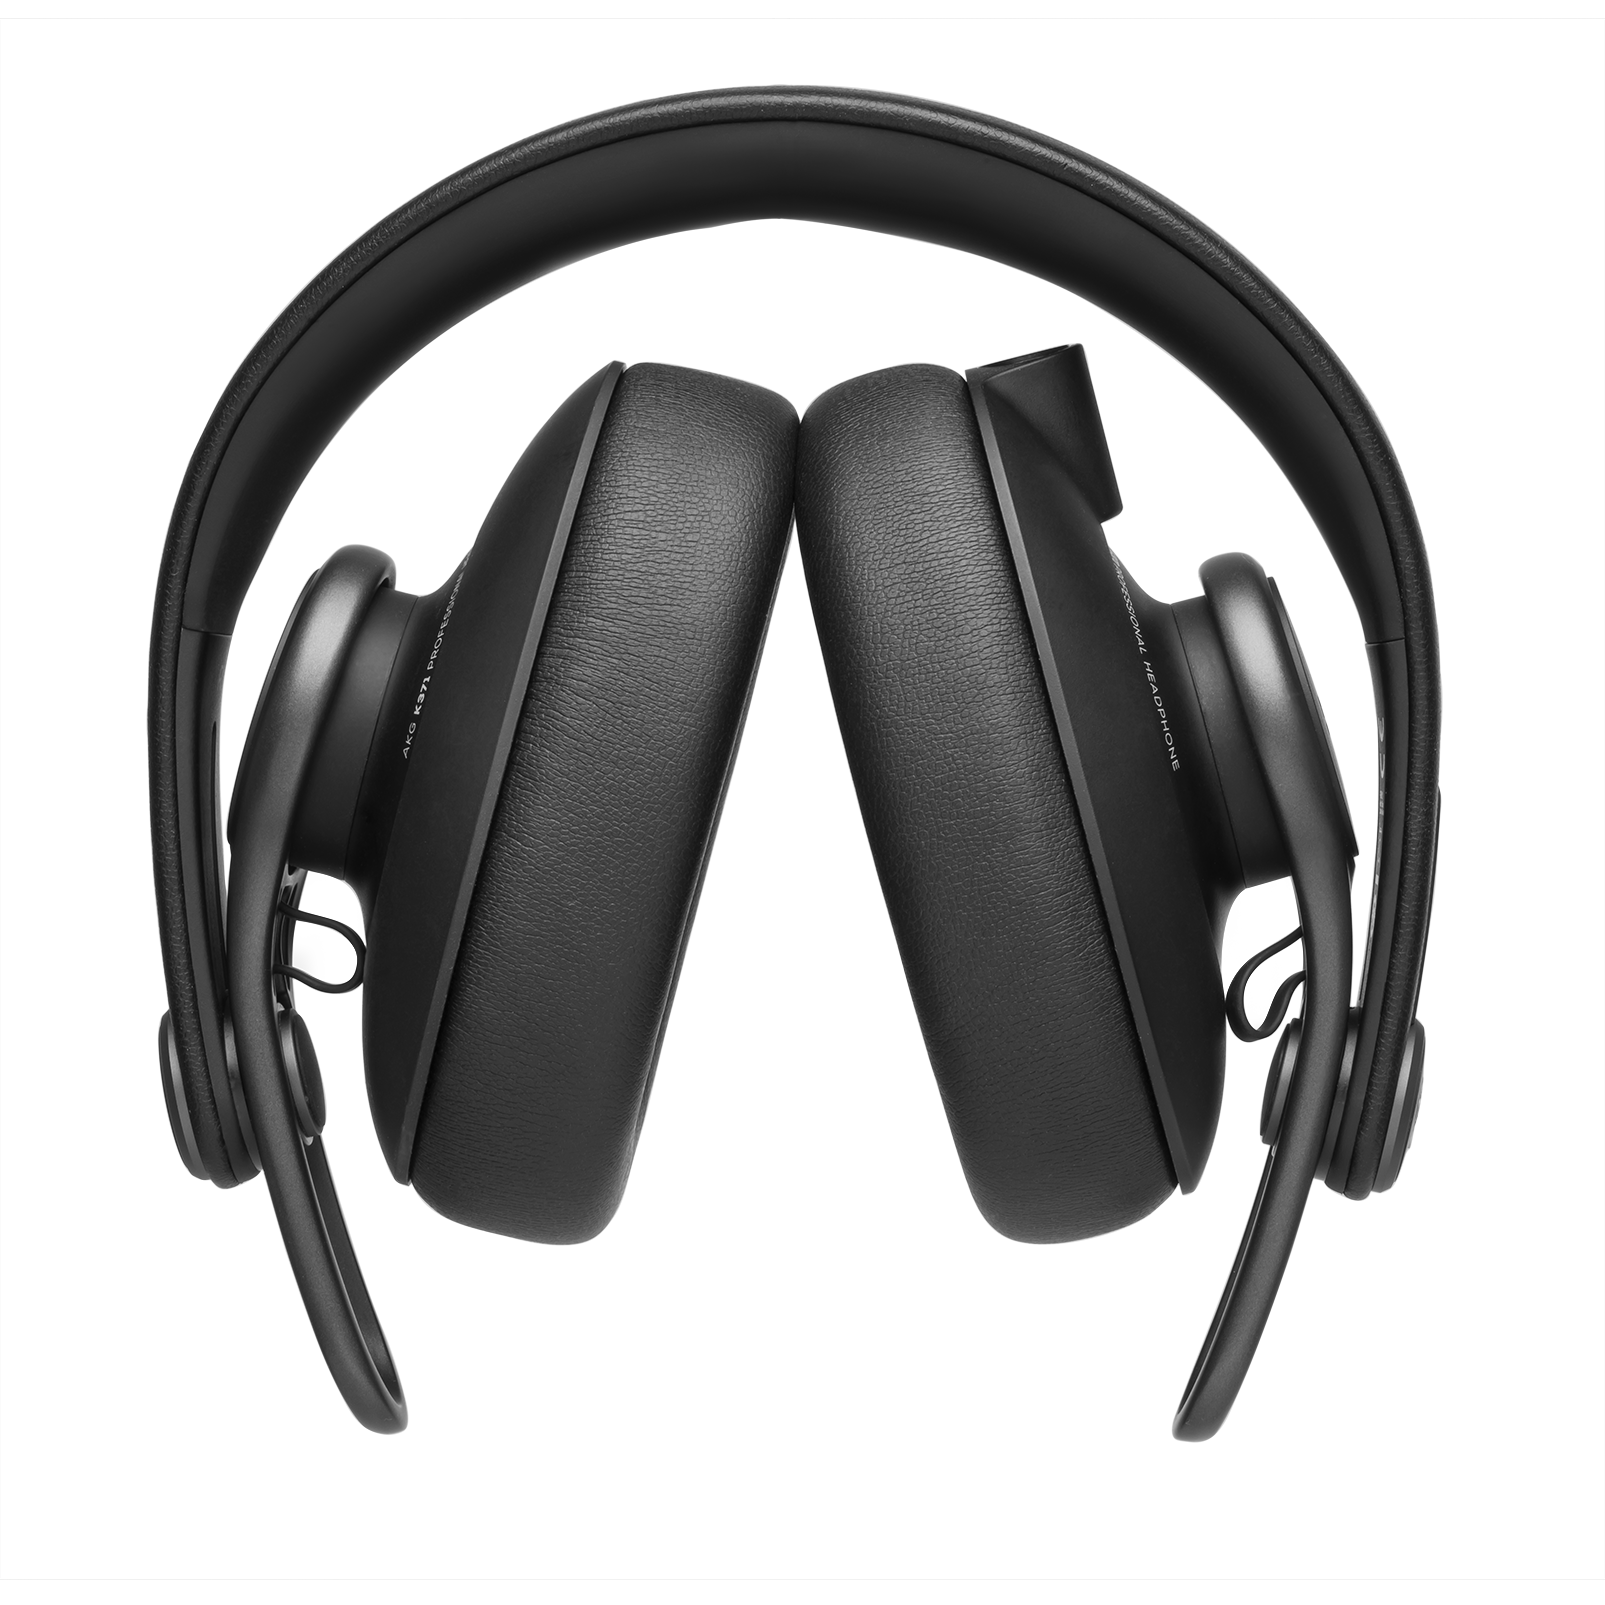 K371 - Black - Over-ear, closed-back, foldable studio headphones - Detailshot 2